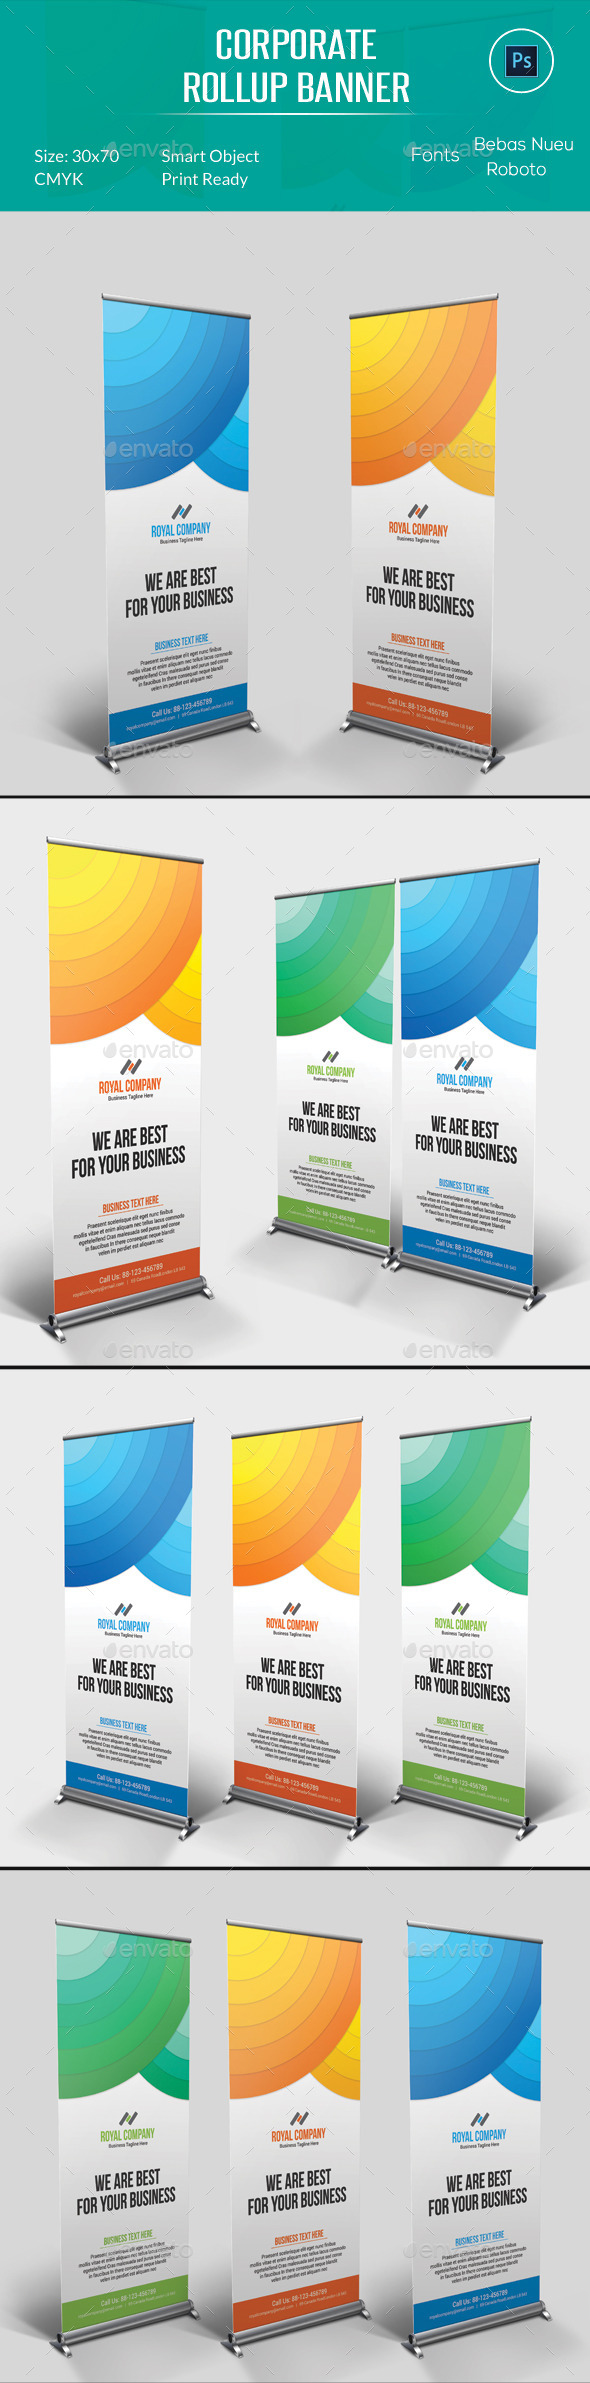 Corporate Rollup Banner - Signage Print Templates